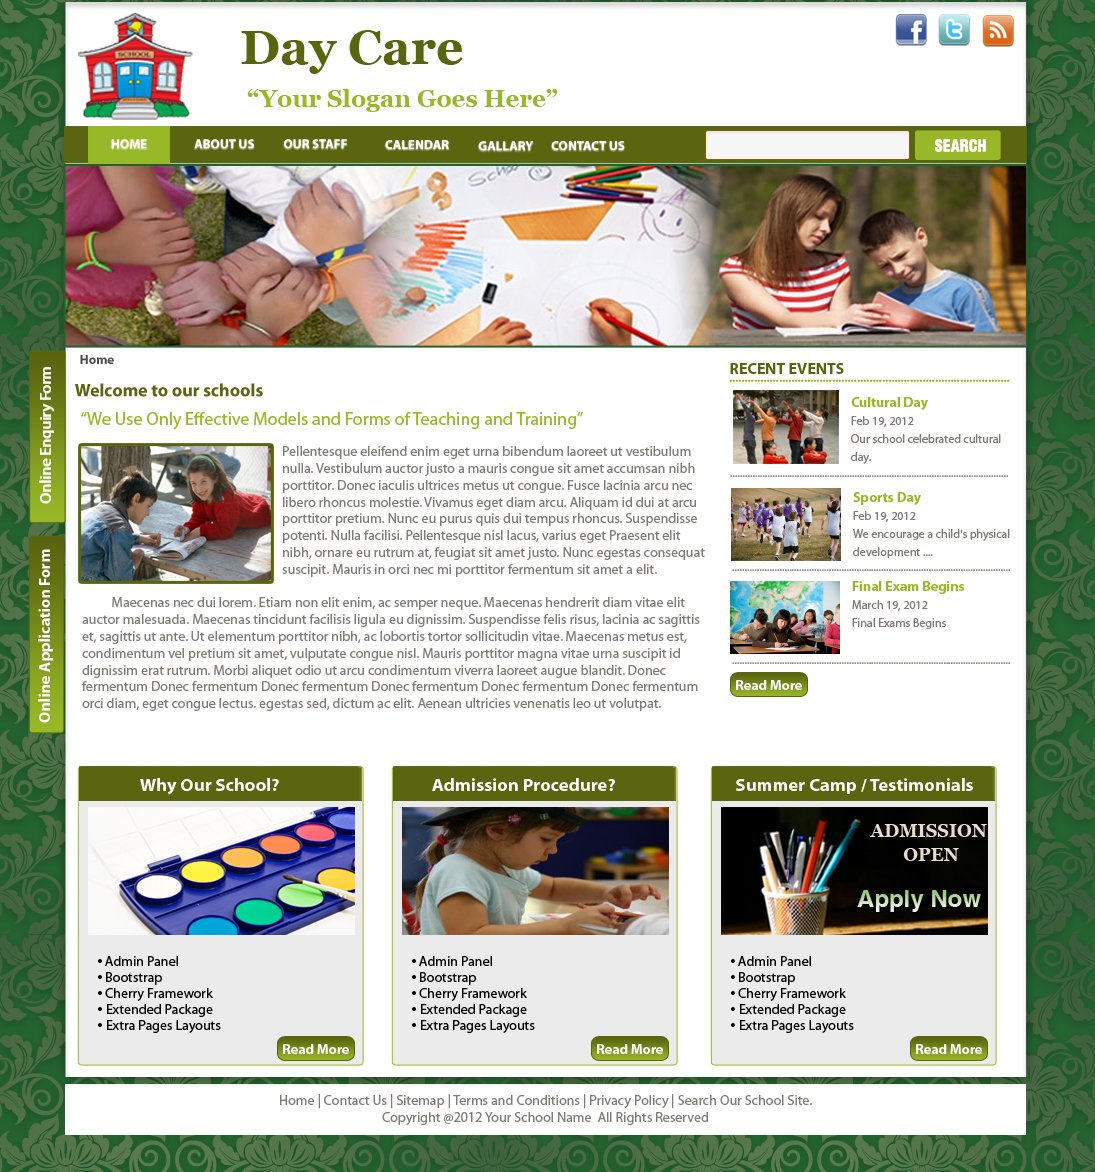 daycare template drupal org daycare playschool theme for drupal is a professional responsive theme for starting your day care website on drupal it is a mobile friendly theme built